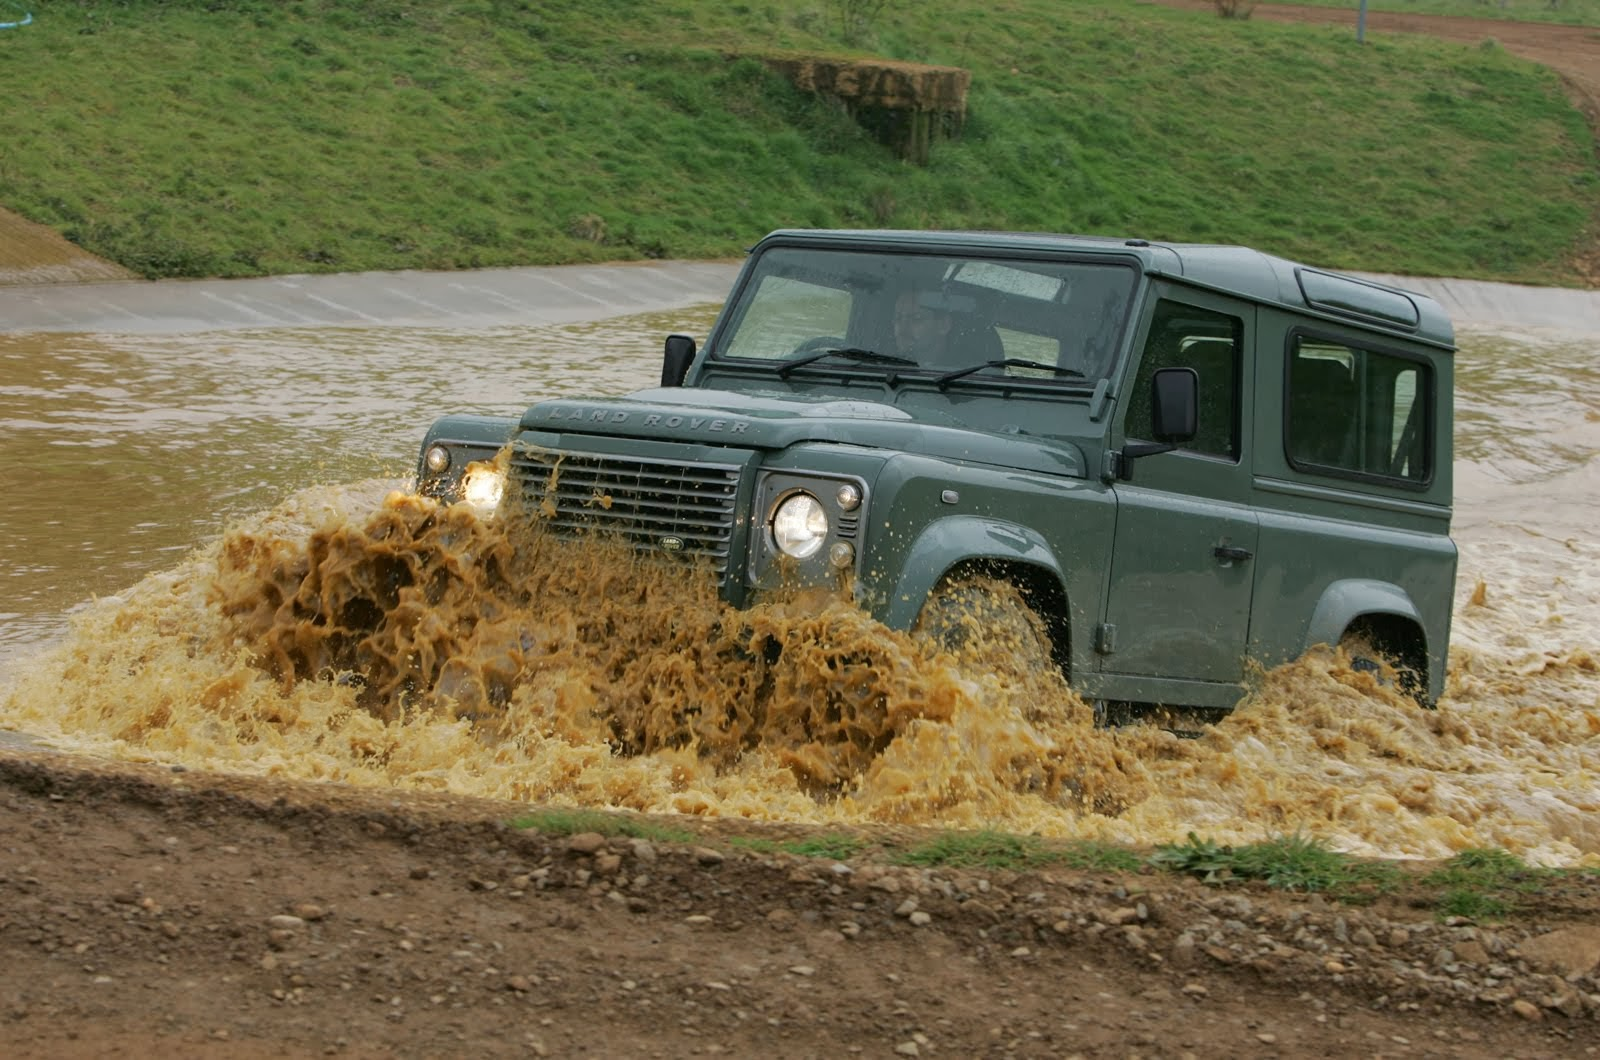 WWW.DEFENDER-LANDROVER.CO.UK